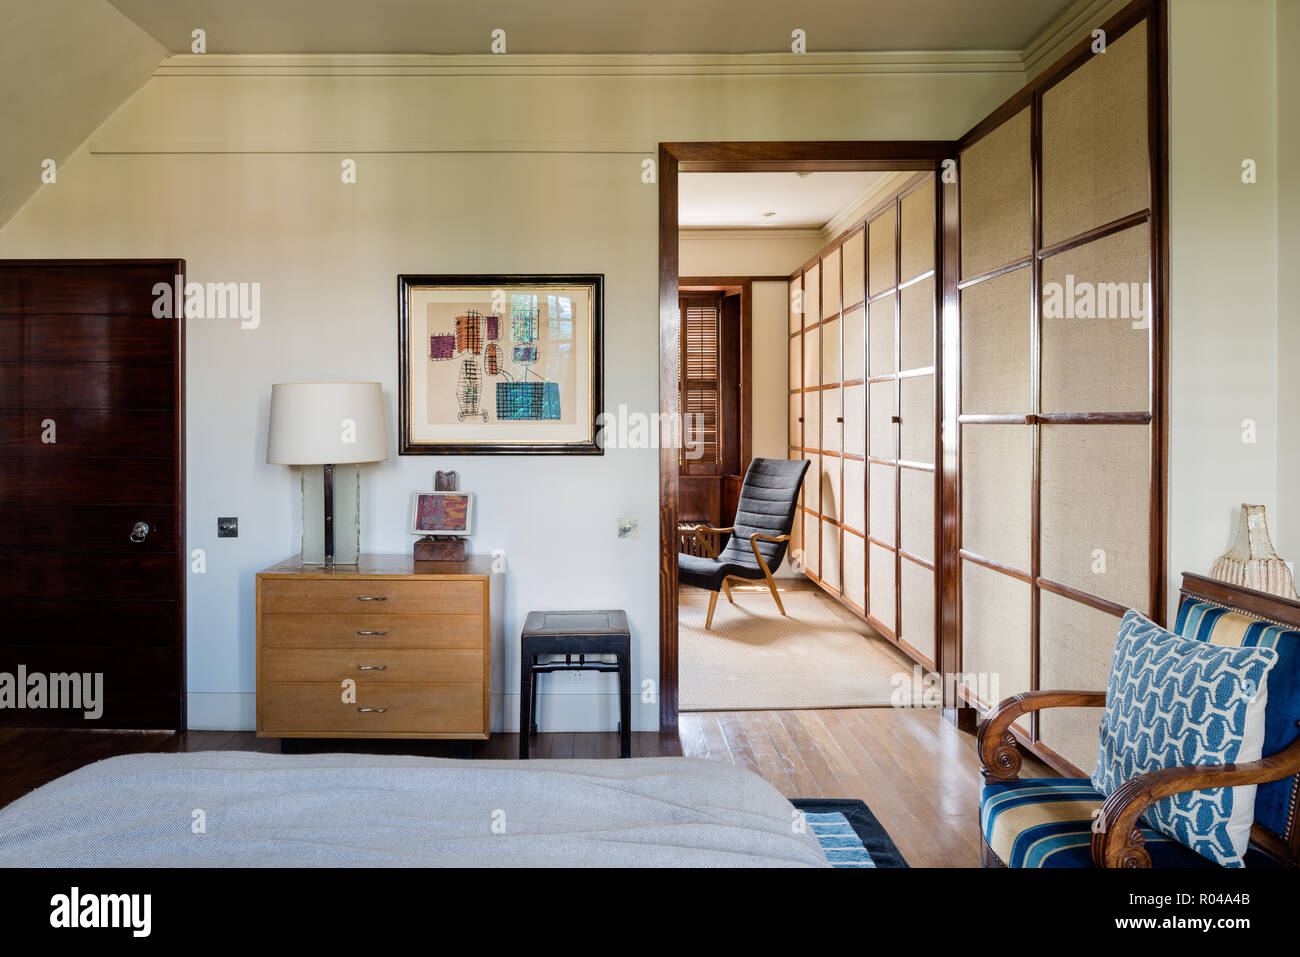 Drawers and armchairs in bedroom - Stock Image